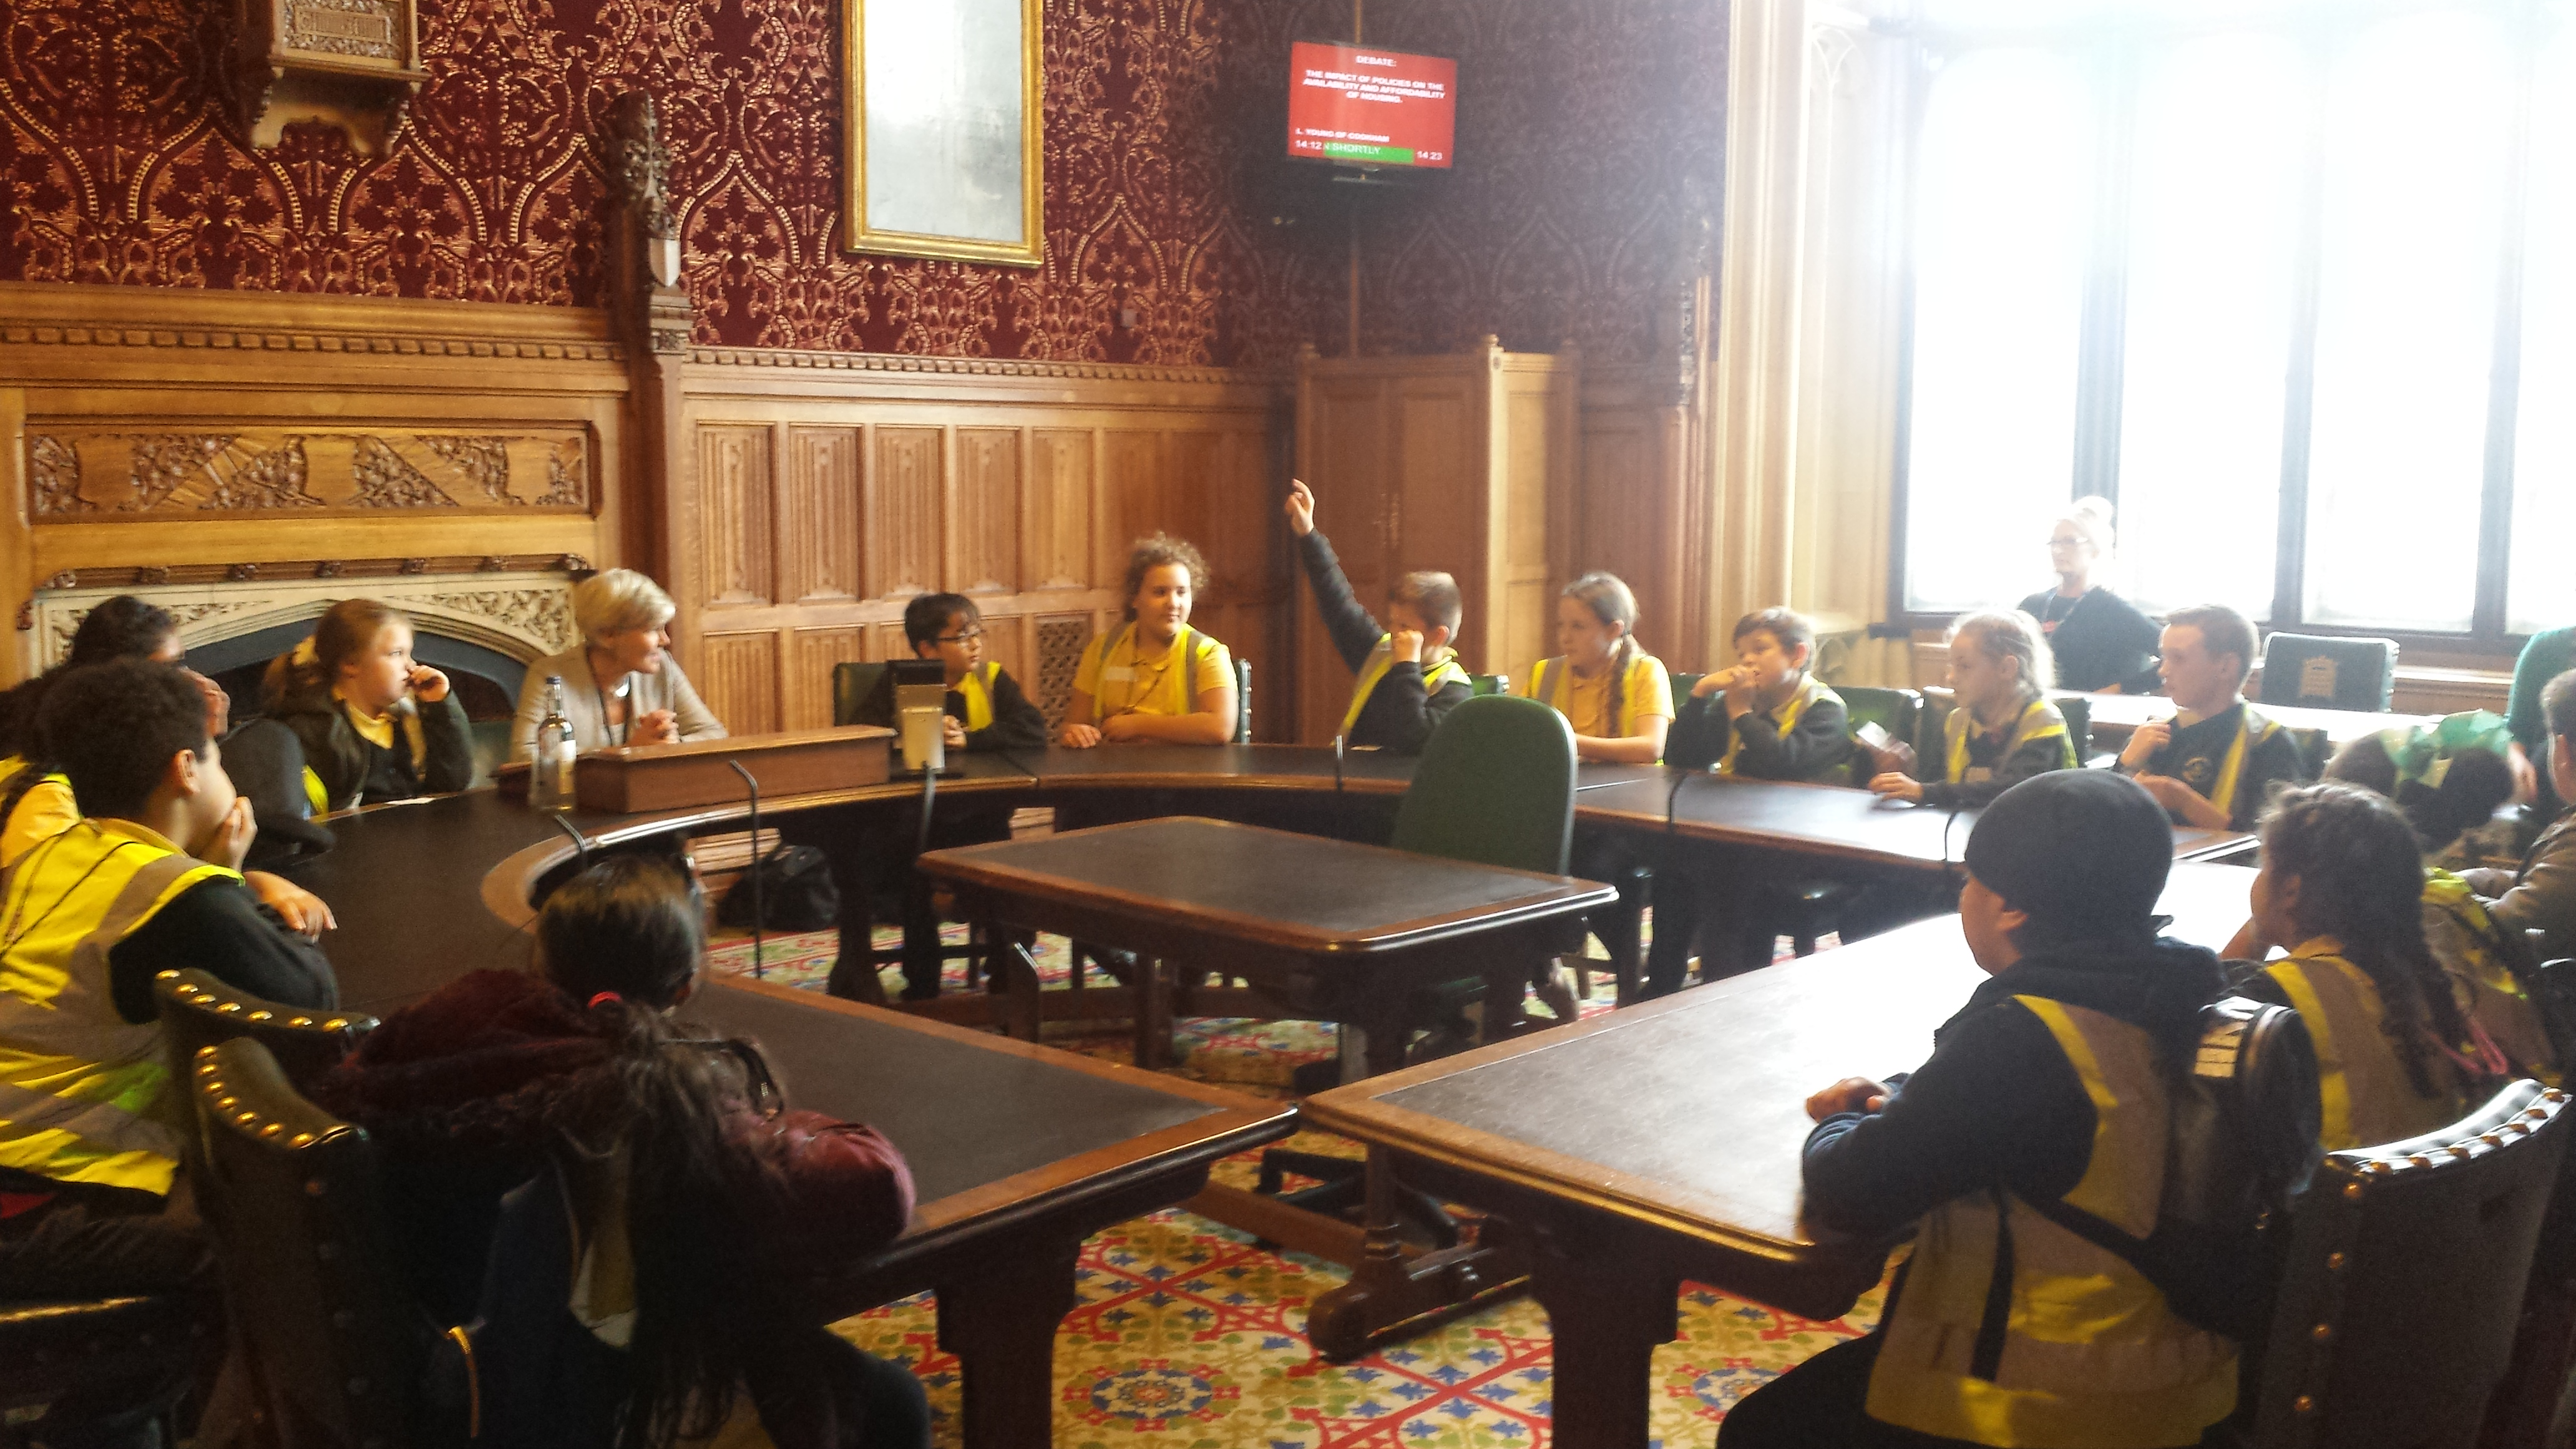 gorse_hill_visit_to_parliament_october_2017_action_shot.jpg